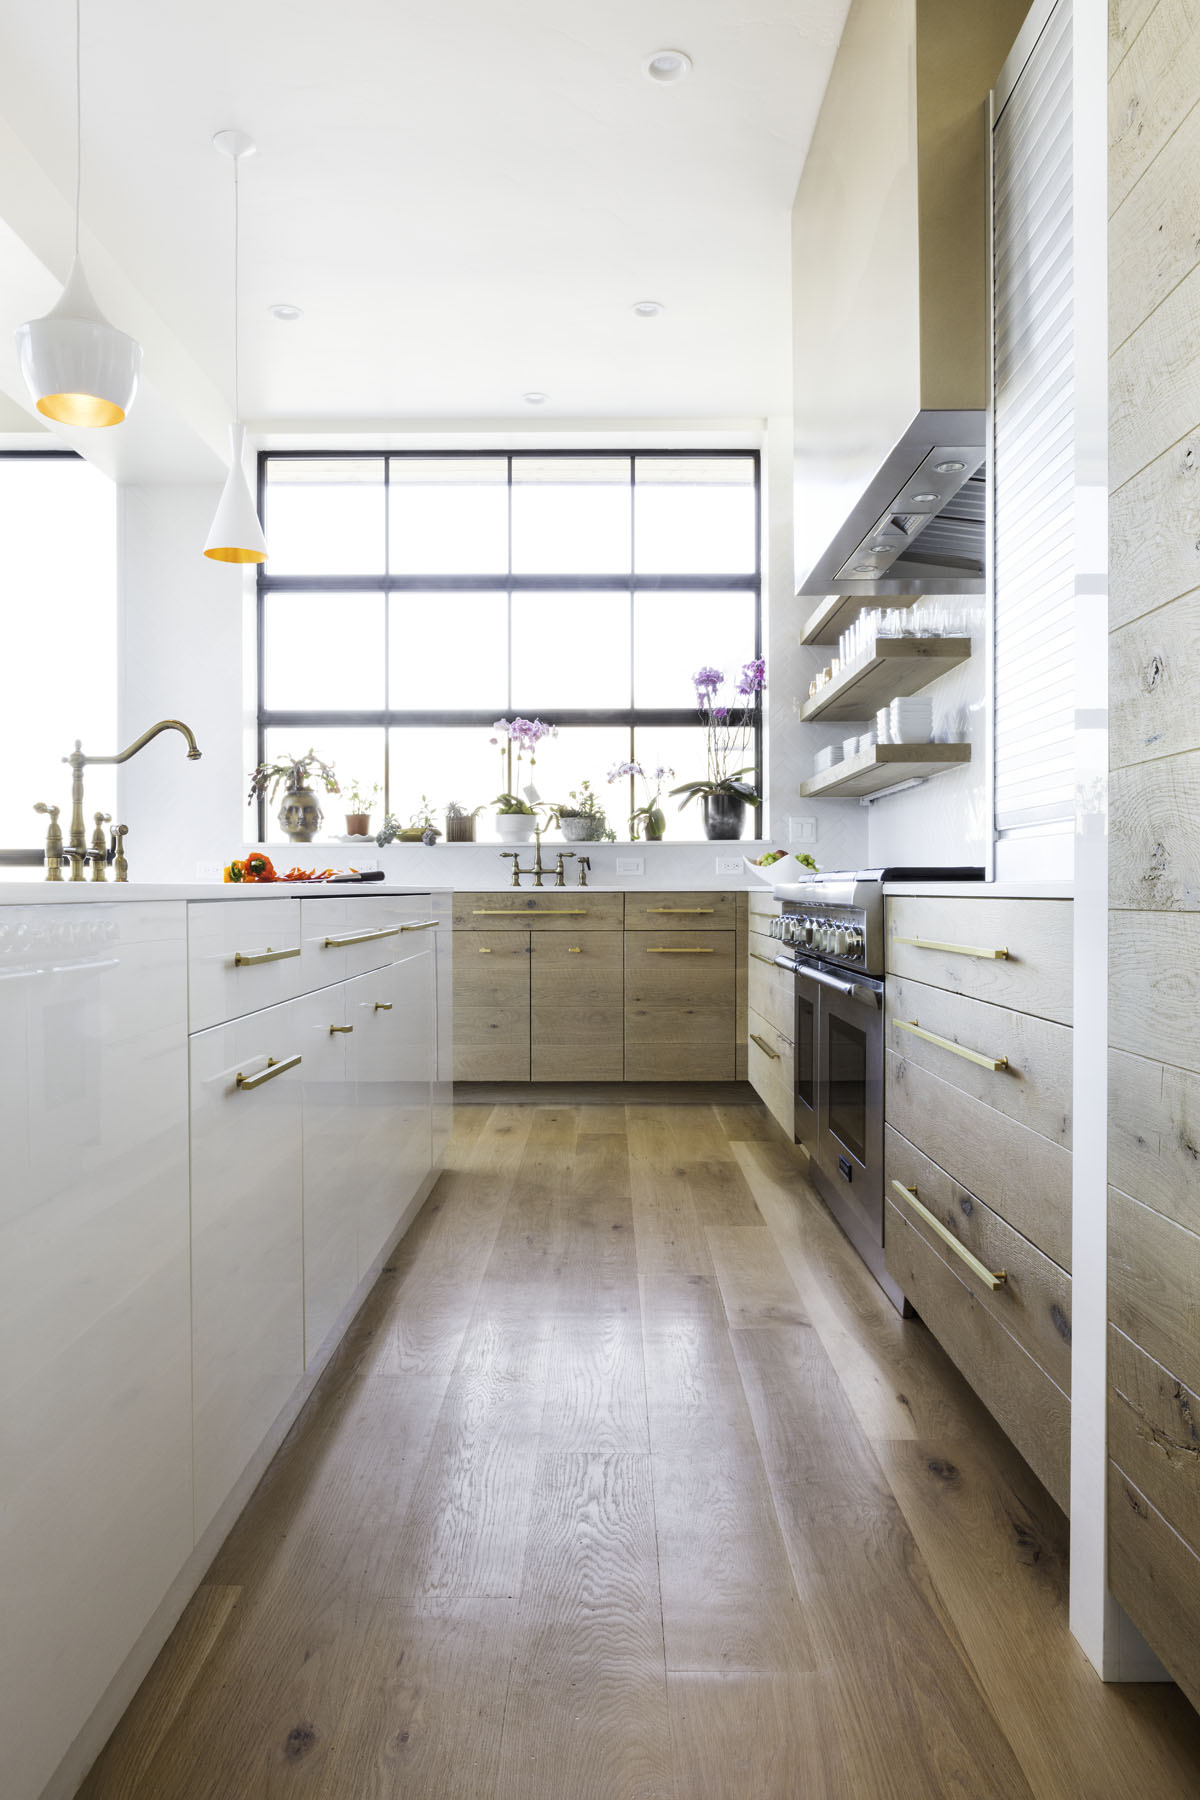 A white island with a sink and cabinets to the left faces the stove and more storage to the right in this modern residential design.